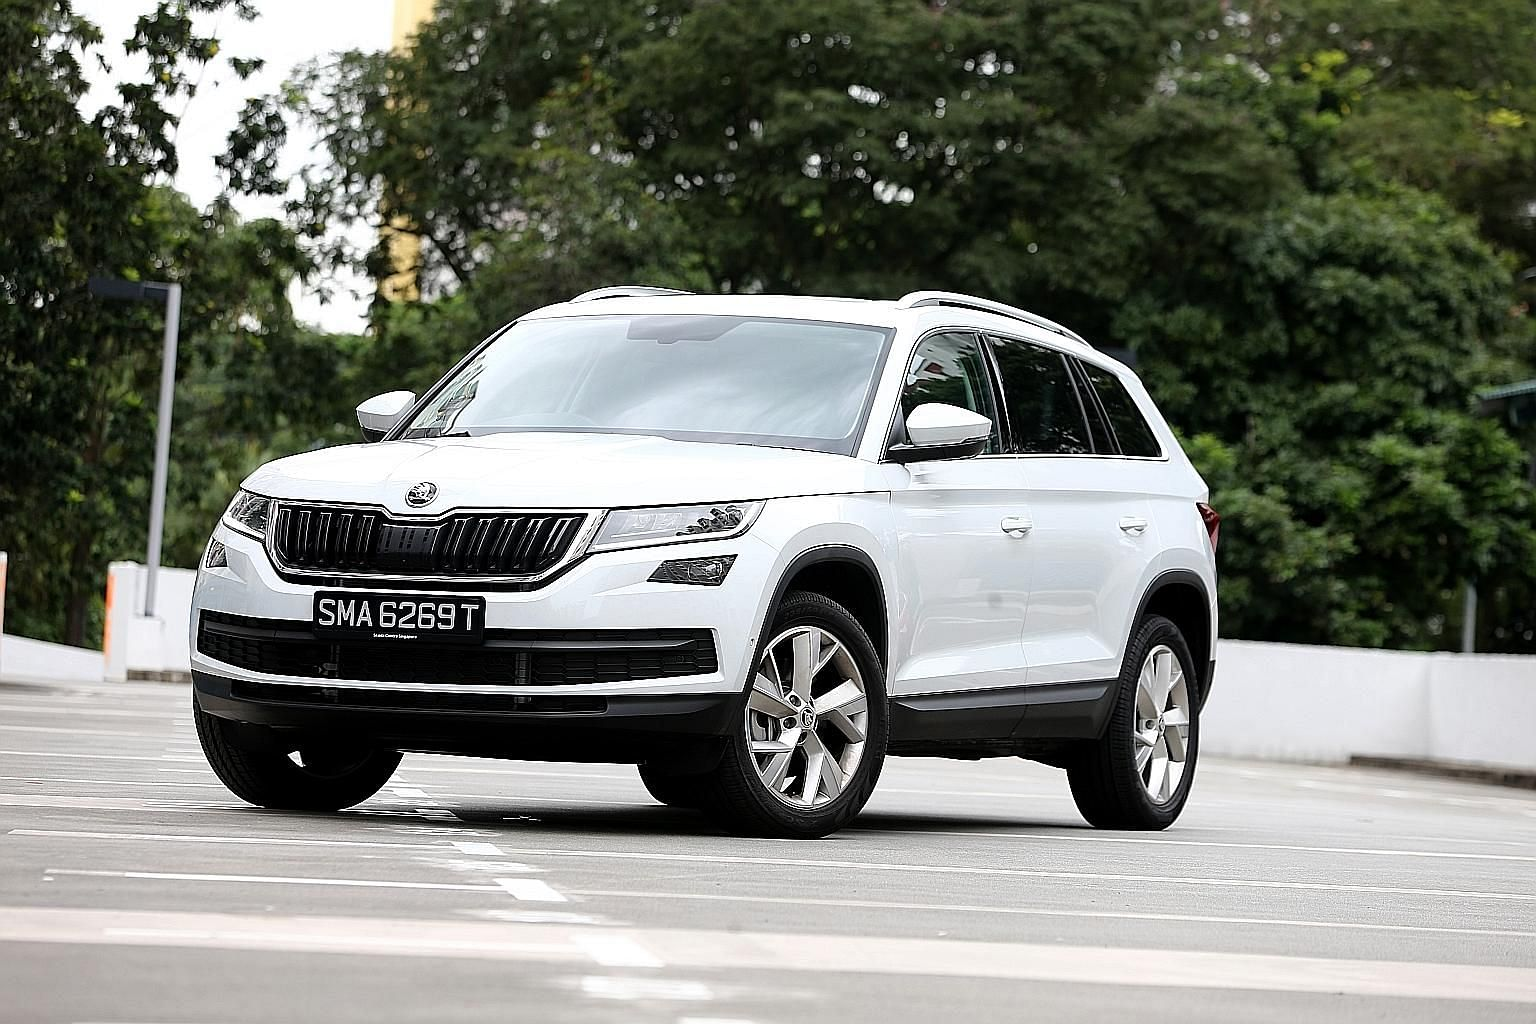 The Kodiaq drives more like a sporty hatchback than an SUV, with quick and sharp steering. Its start button is located on the steering column (left), where the ignition key usually goes, and its doors are equipped with door edge protection - a plasti